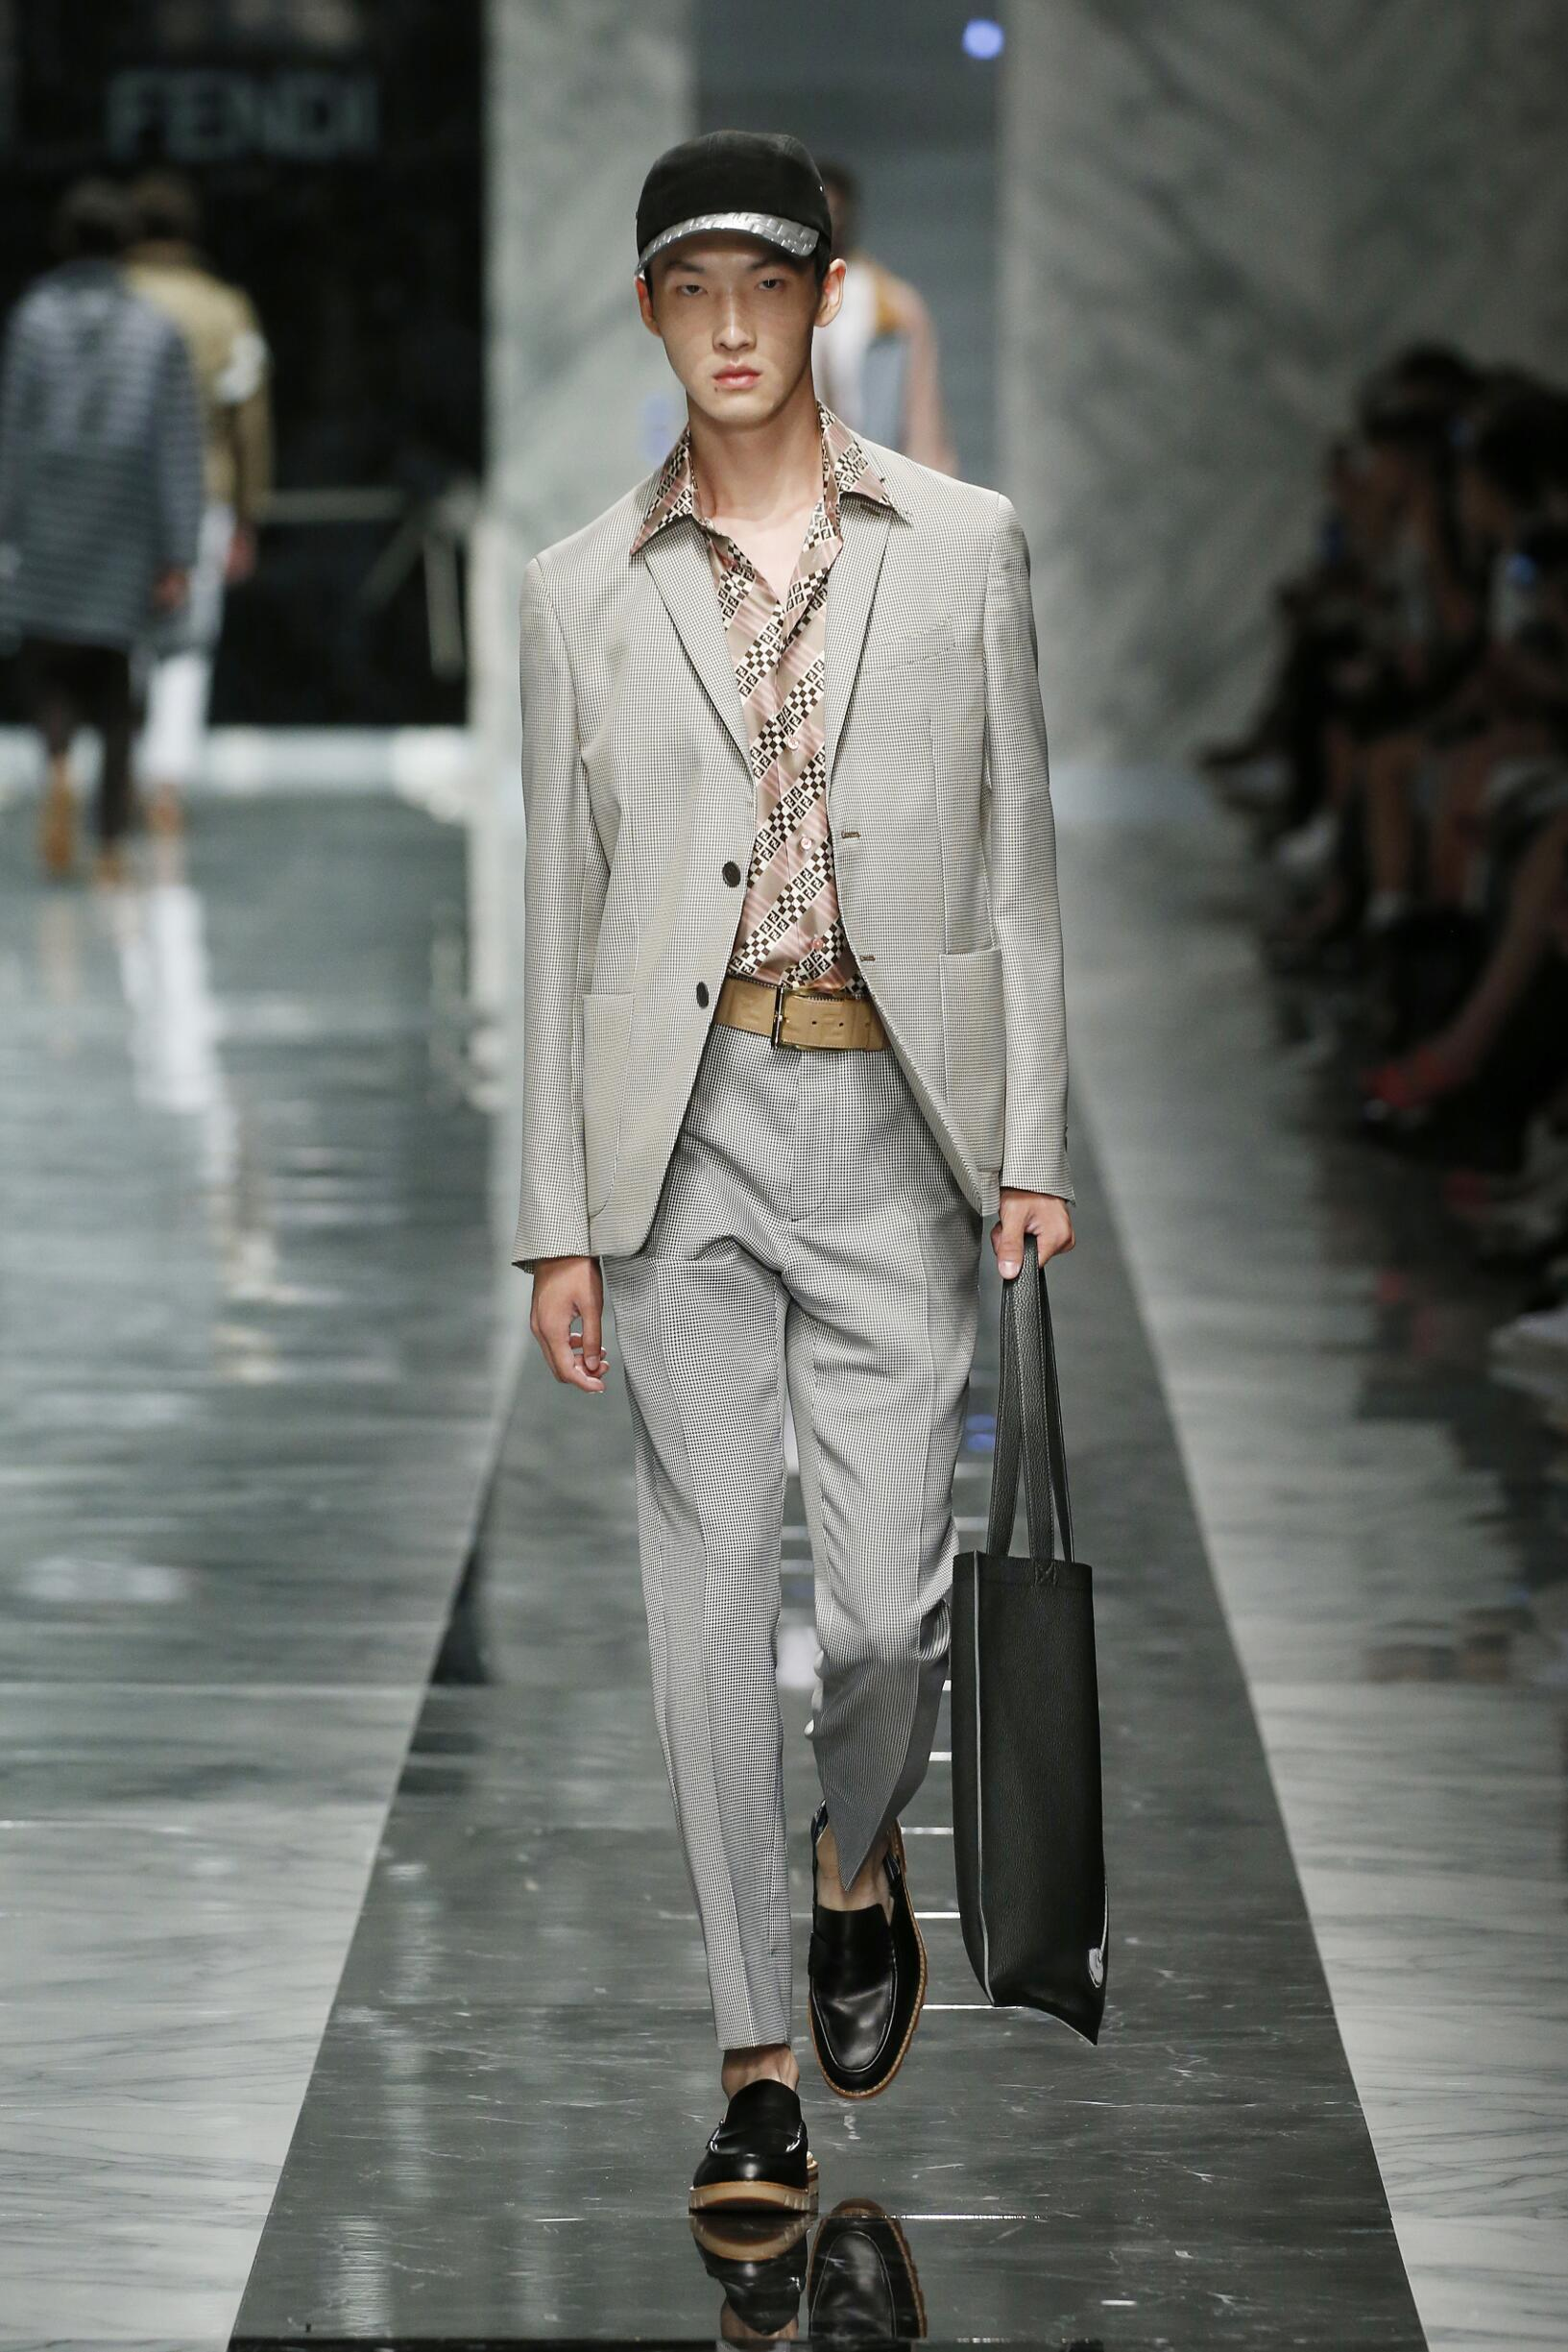 Fashion Model Fendi Catwalk